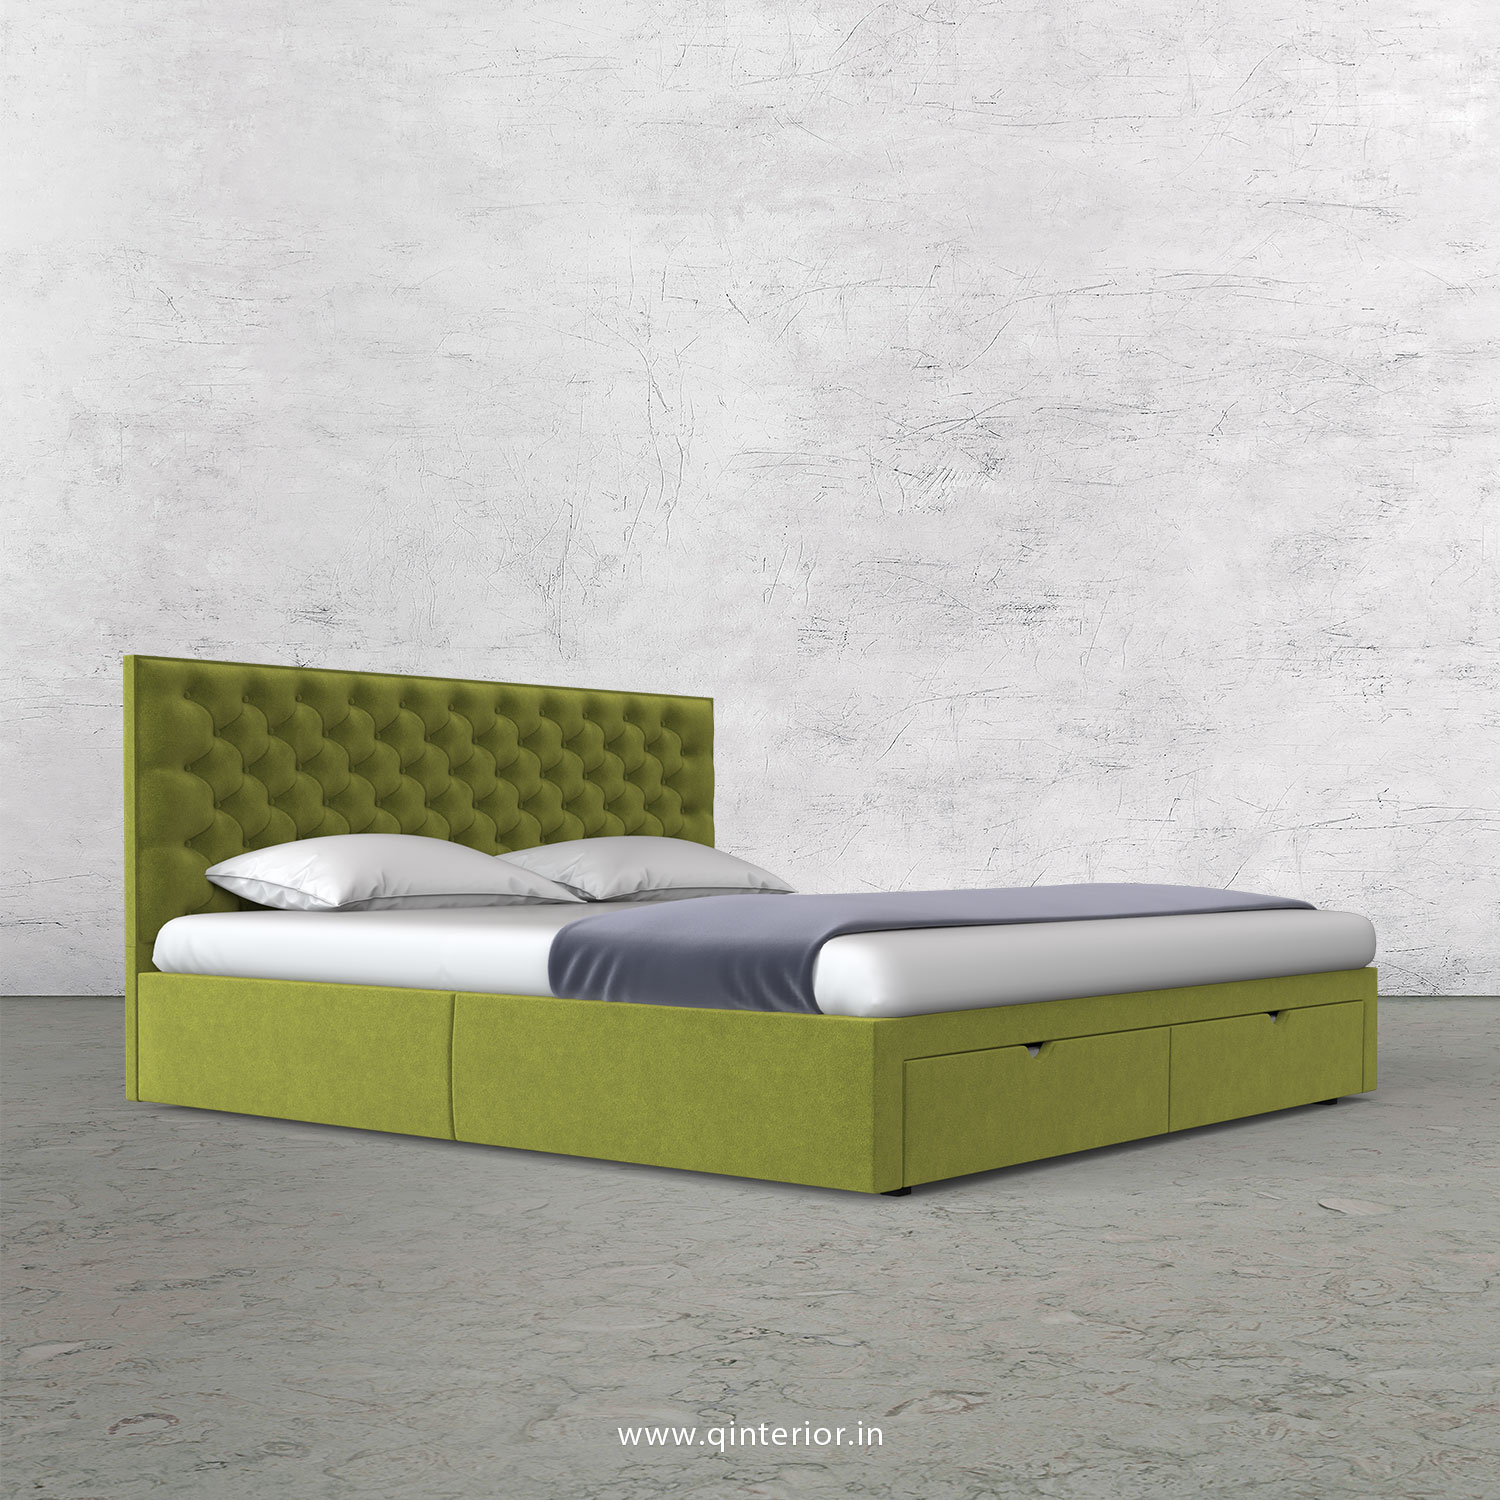 Orion Queen Storage Bed in Velvet Fabric - QBD001 VL10